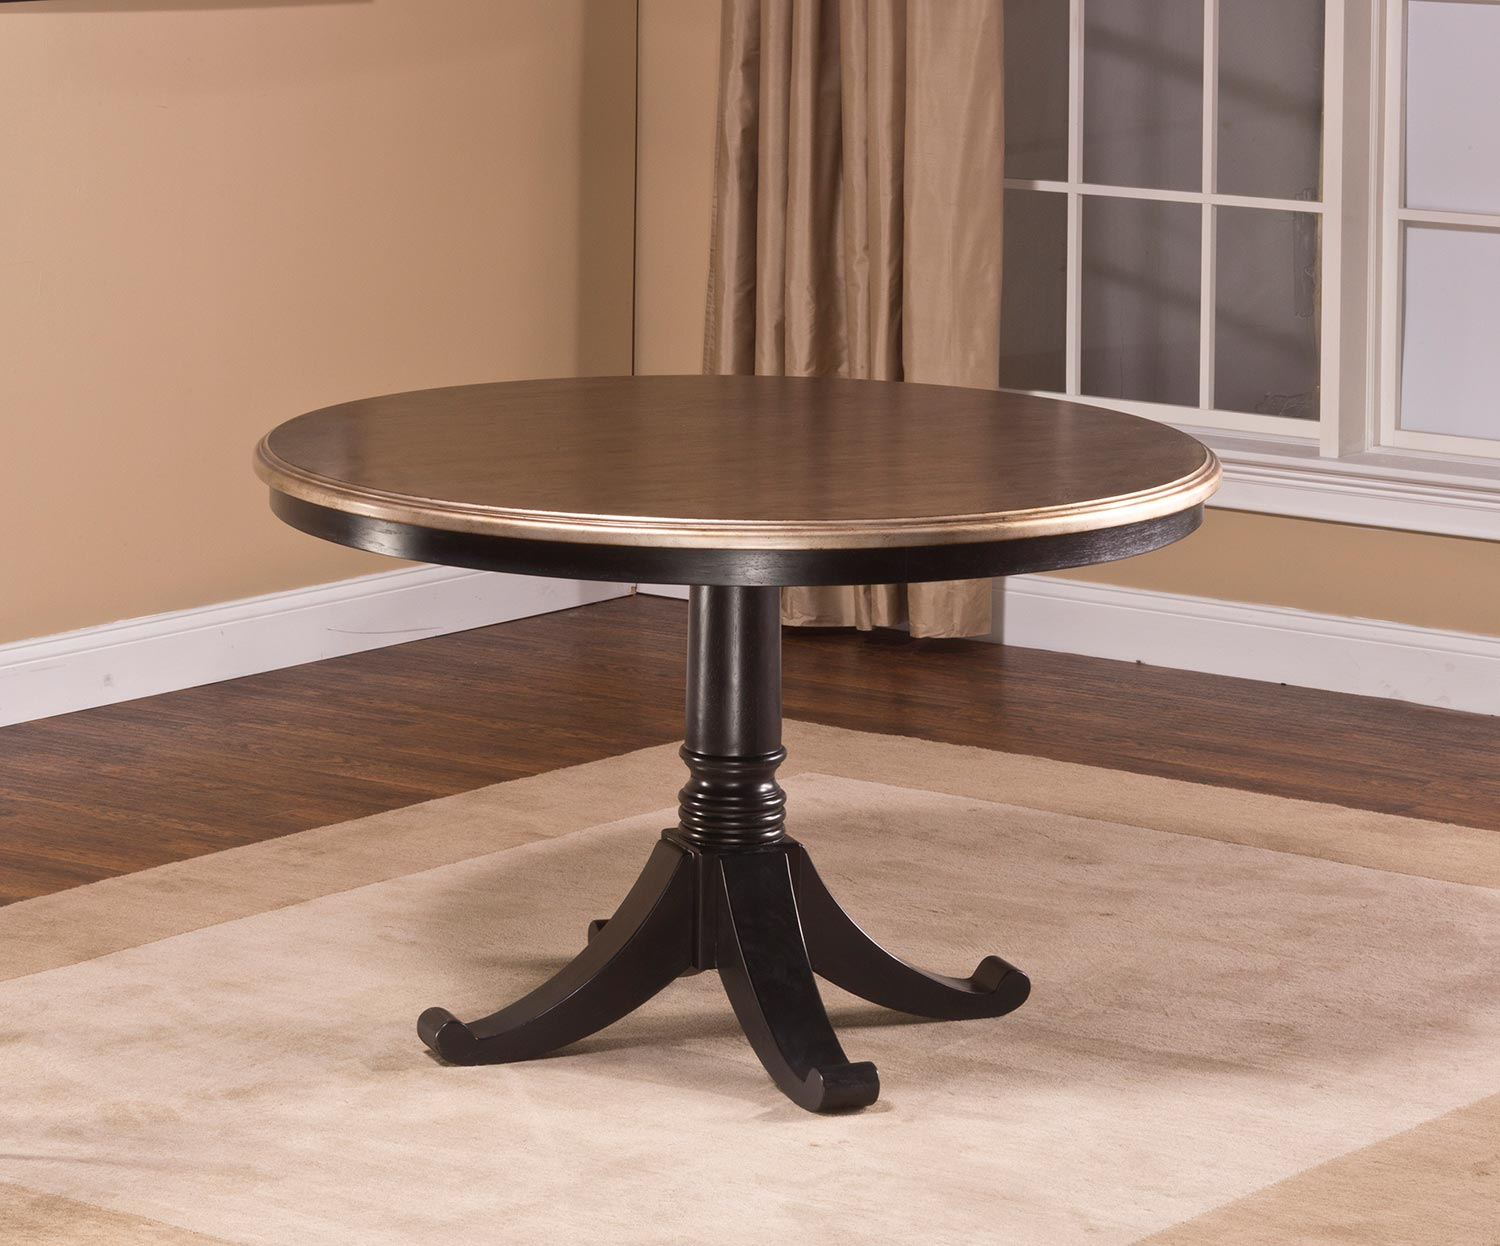 Hillsdale Bennington Pedestal Table - Black Distressed Gray